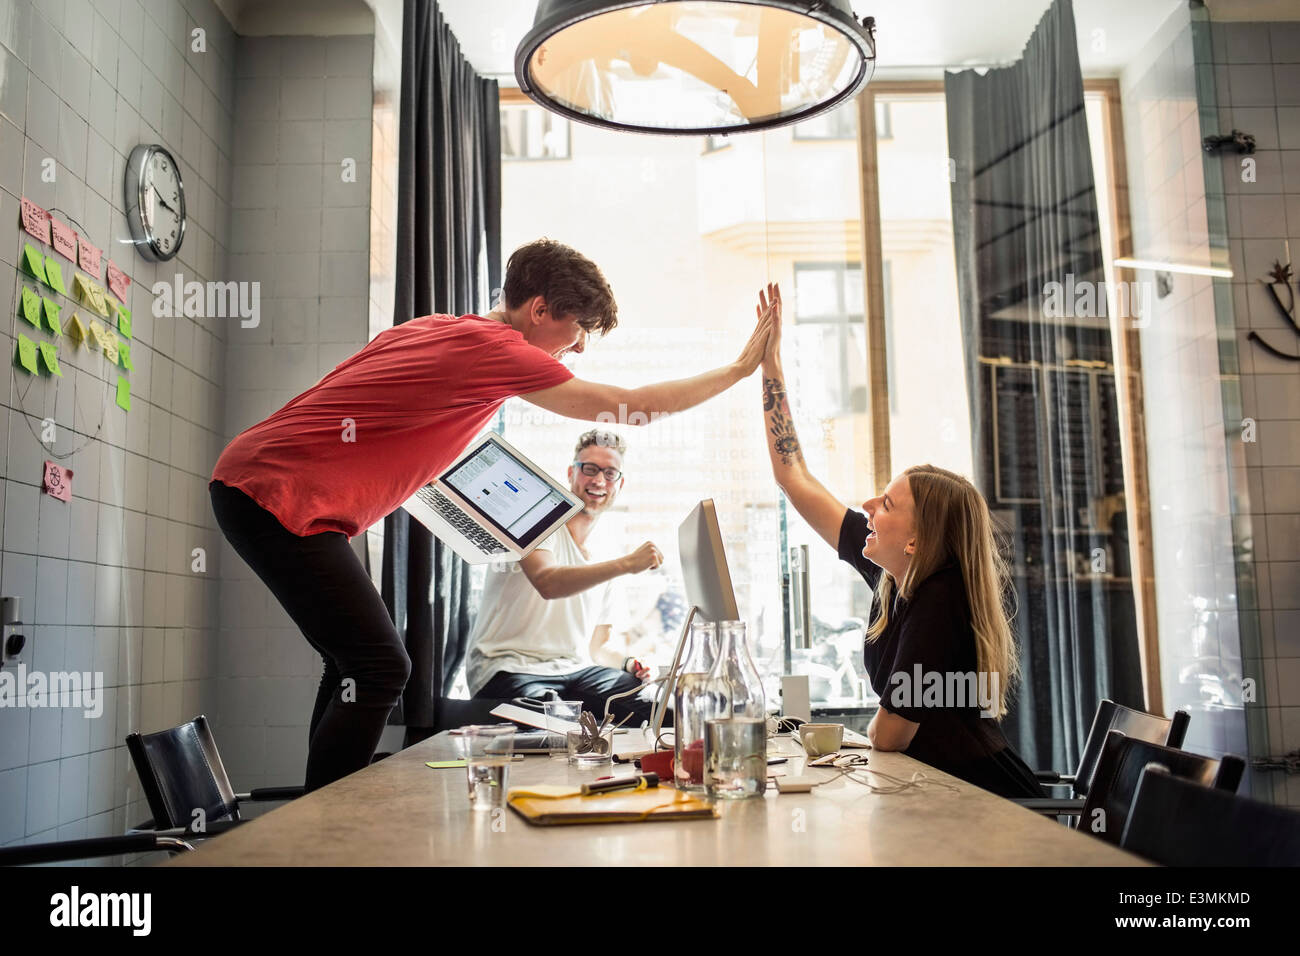 Successful team of new business people in creative office - Stock Image